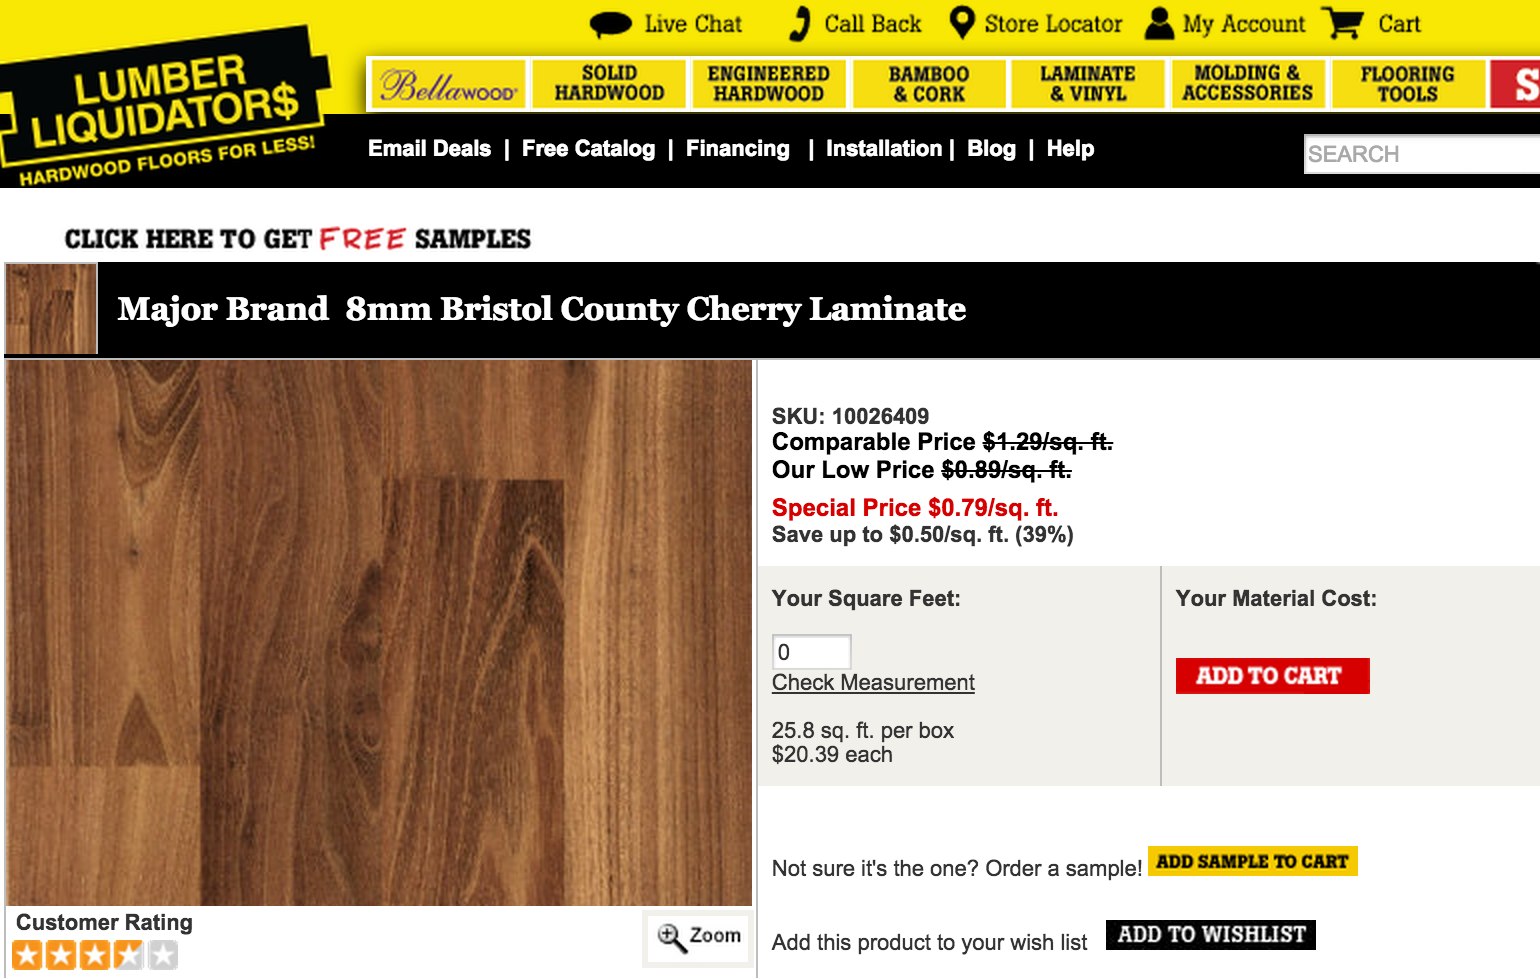 Feds Investigating Lumber Liquidators Over Formaldehyde Allegations